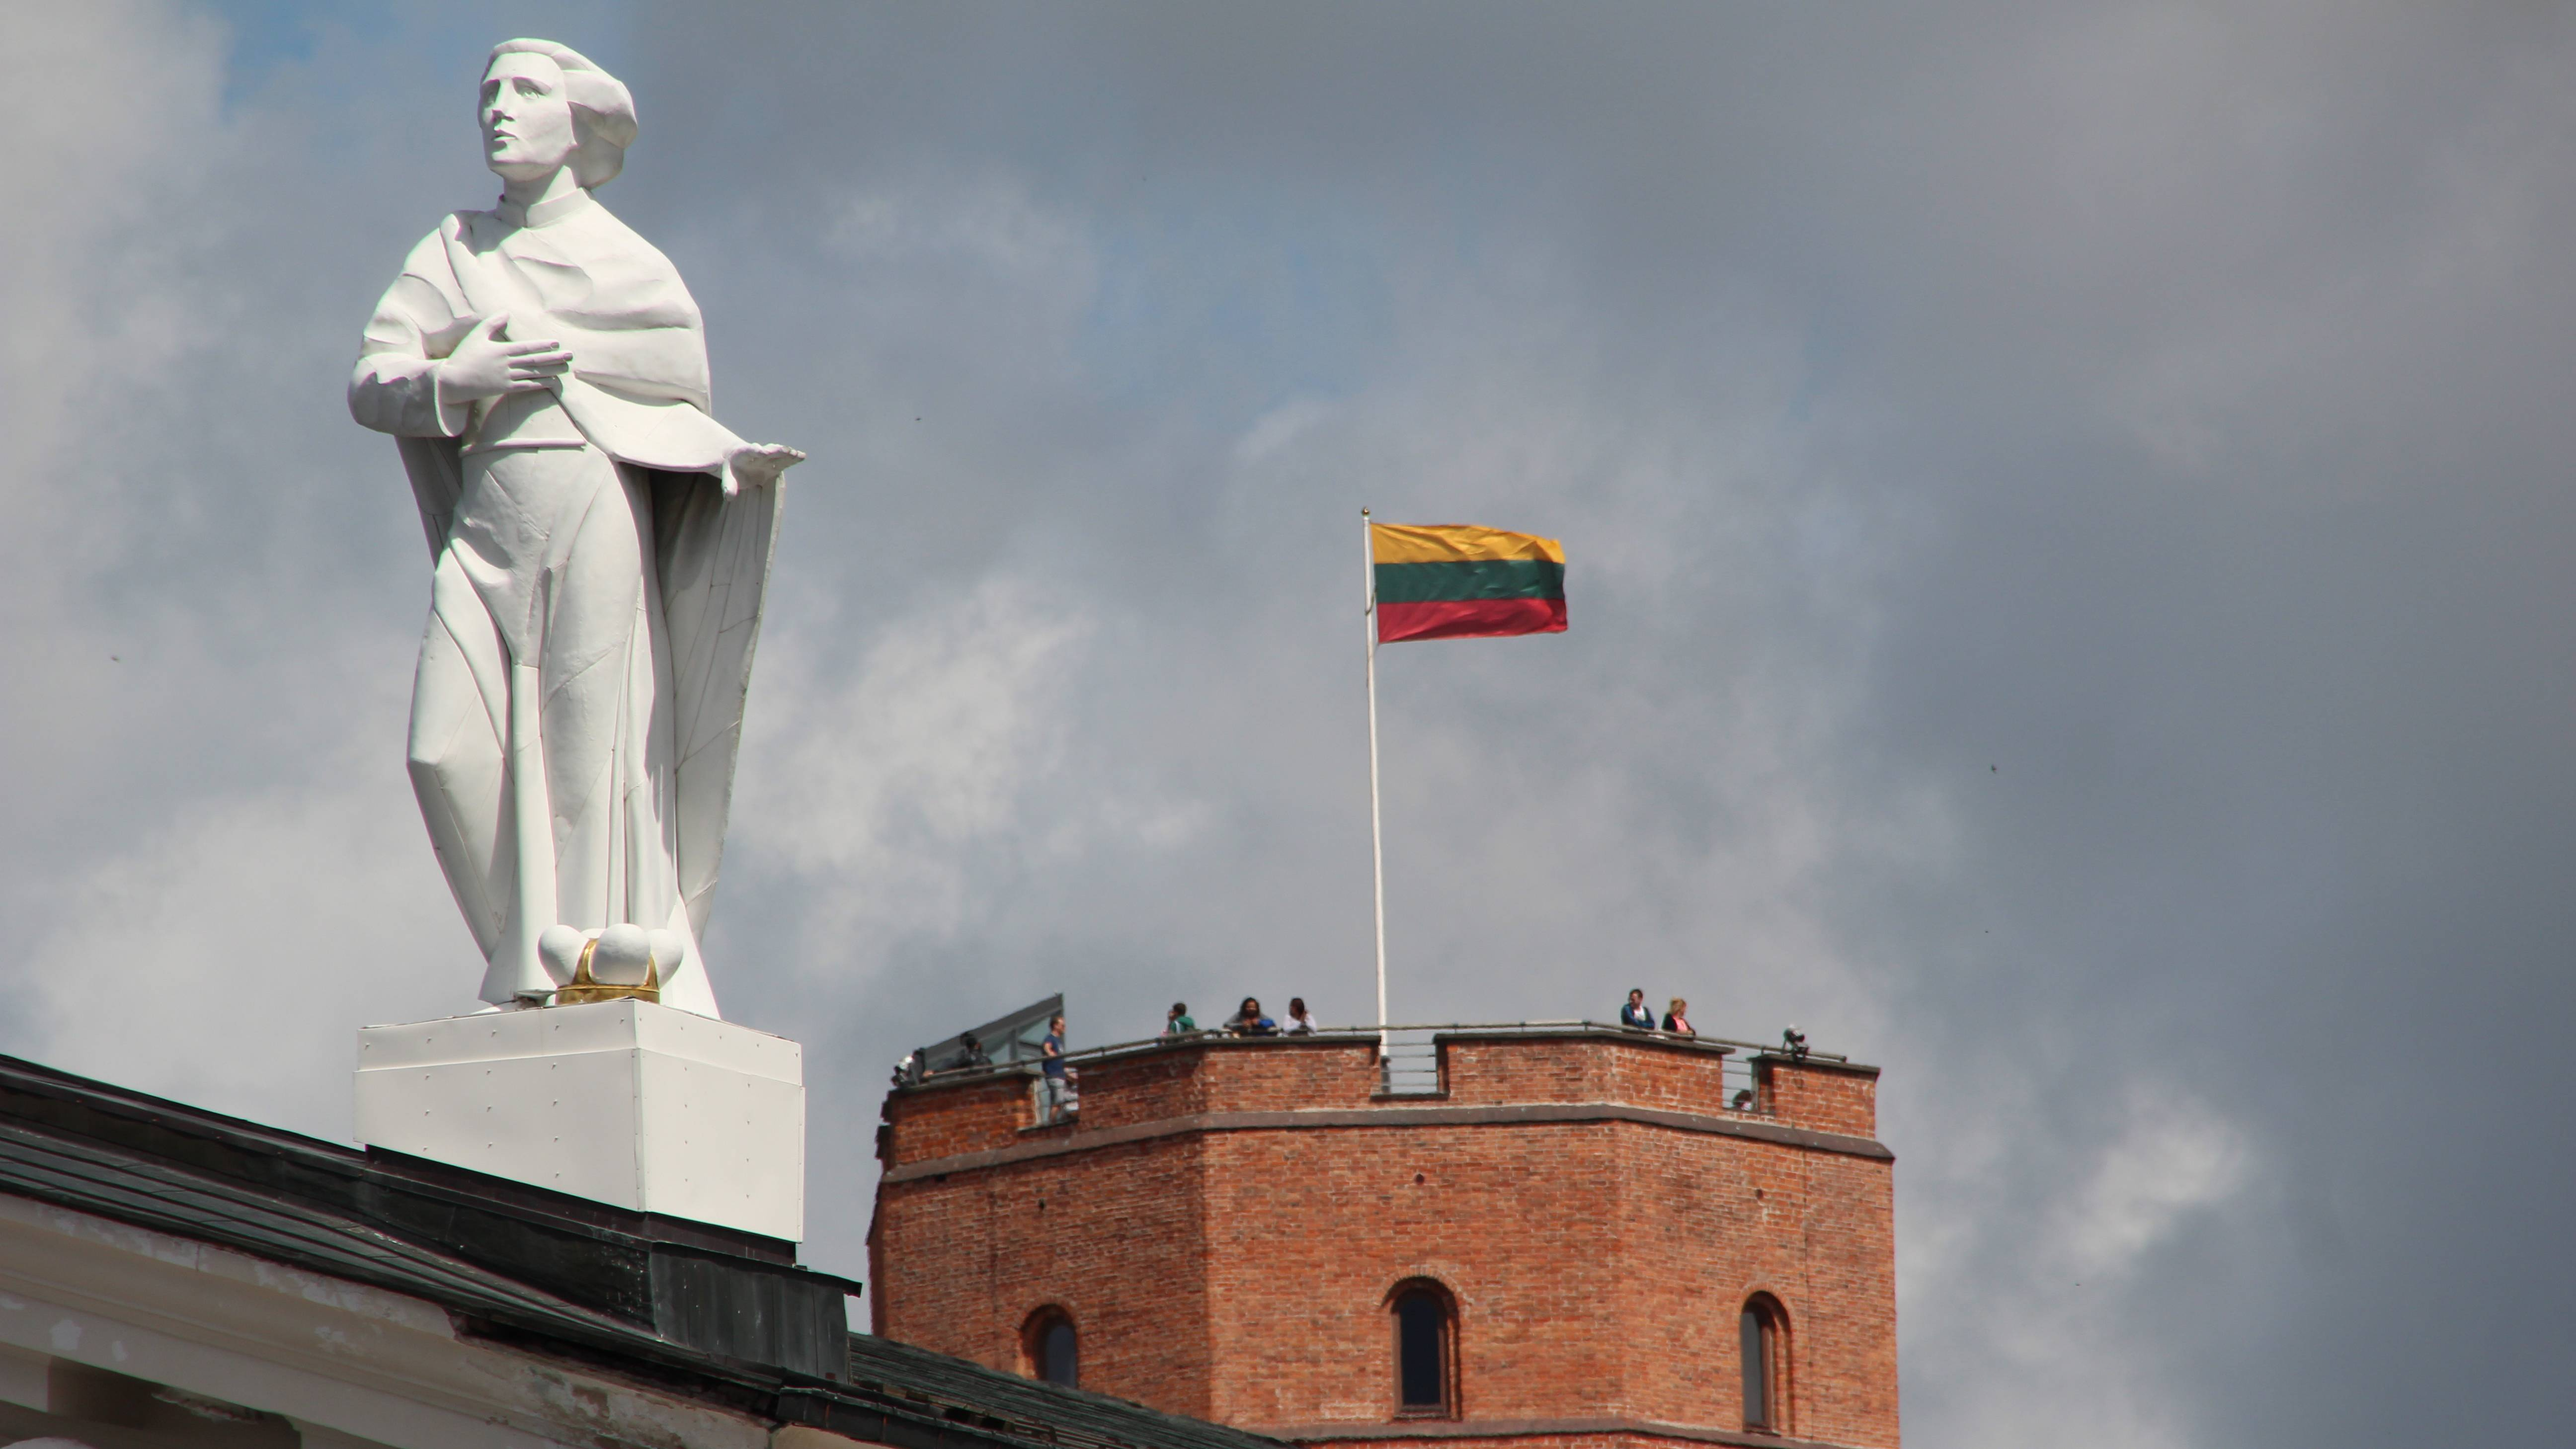 BNS.lt: Lithuania continues to lose population after secession from the USSR